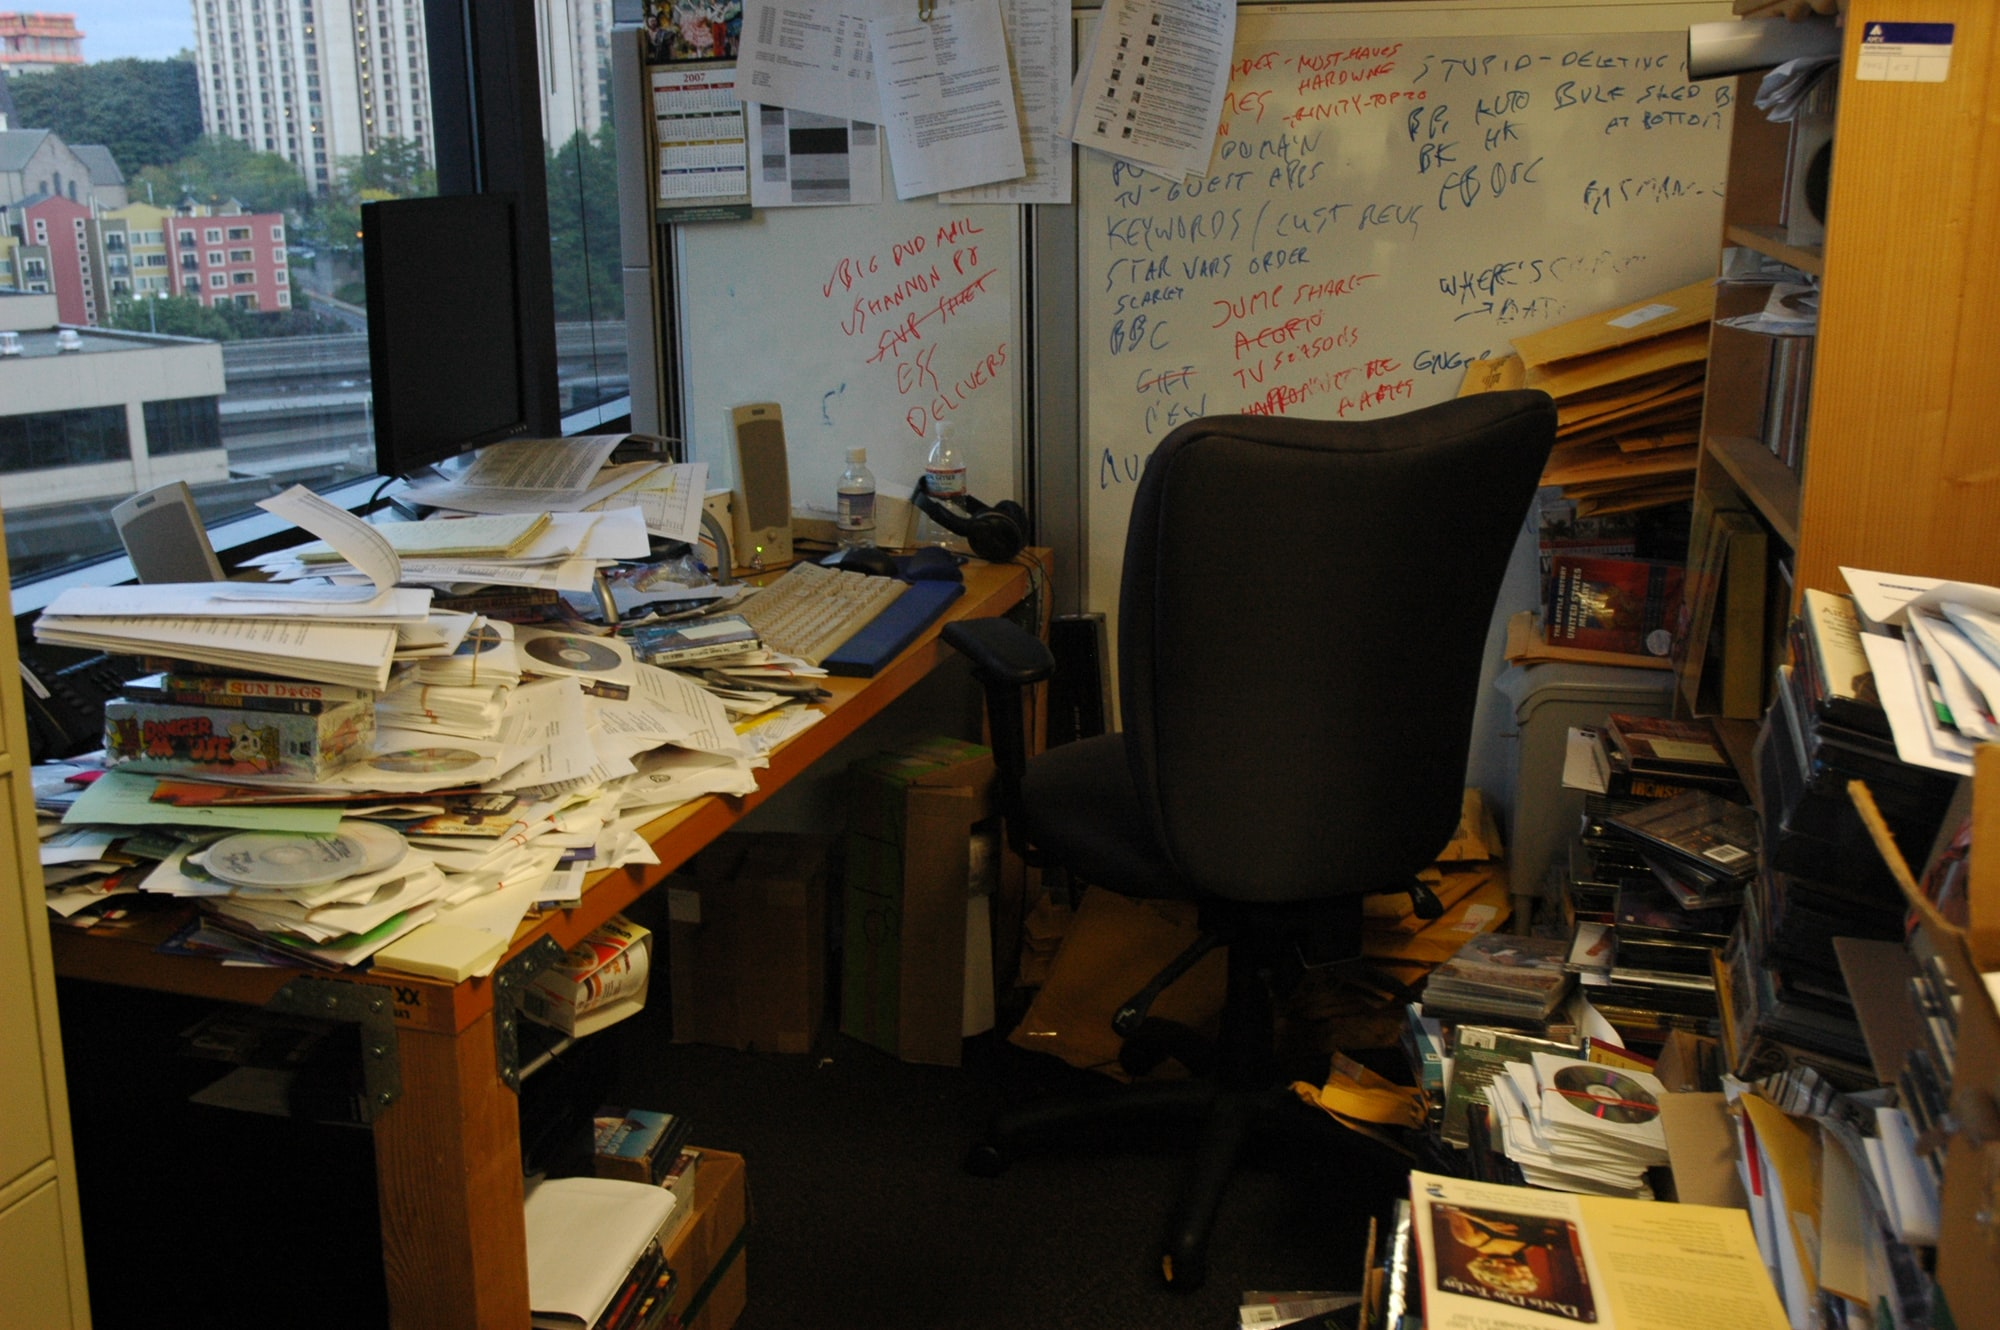 High tech workers office, whiteboard, notes, papers, plans, sample diskettes, stacked, in piles, reviews, keyboard, screen, notes, door desk, speakers, old calendar, cup of noodles, view, high rise, Seattle, Washington, USA